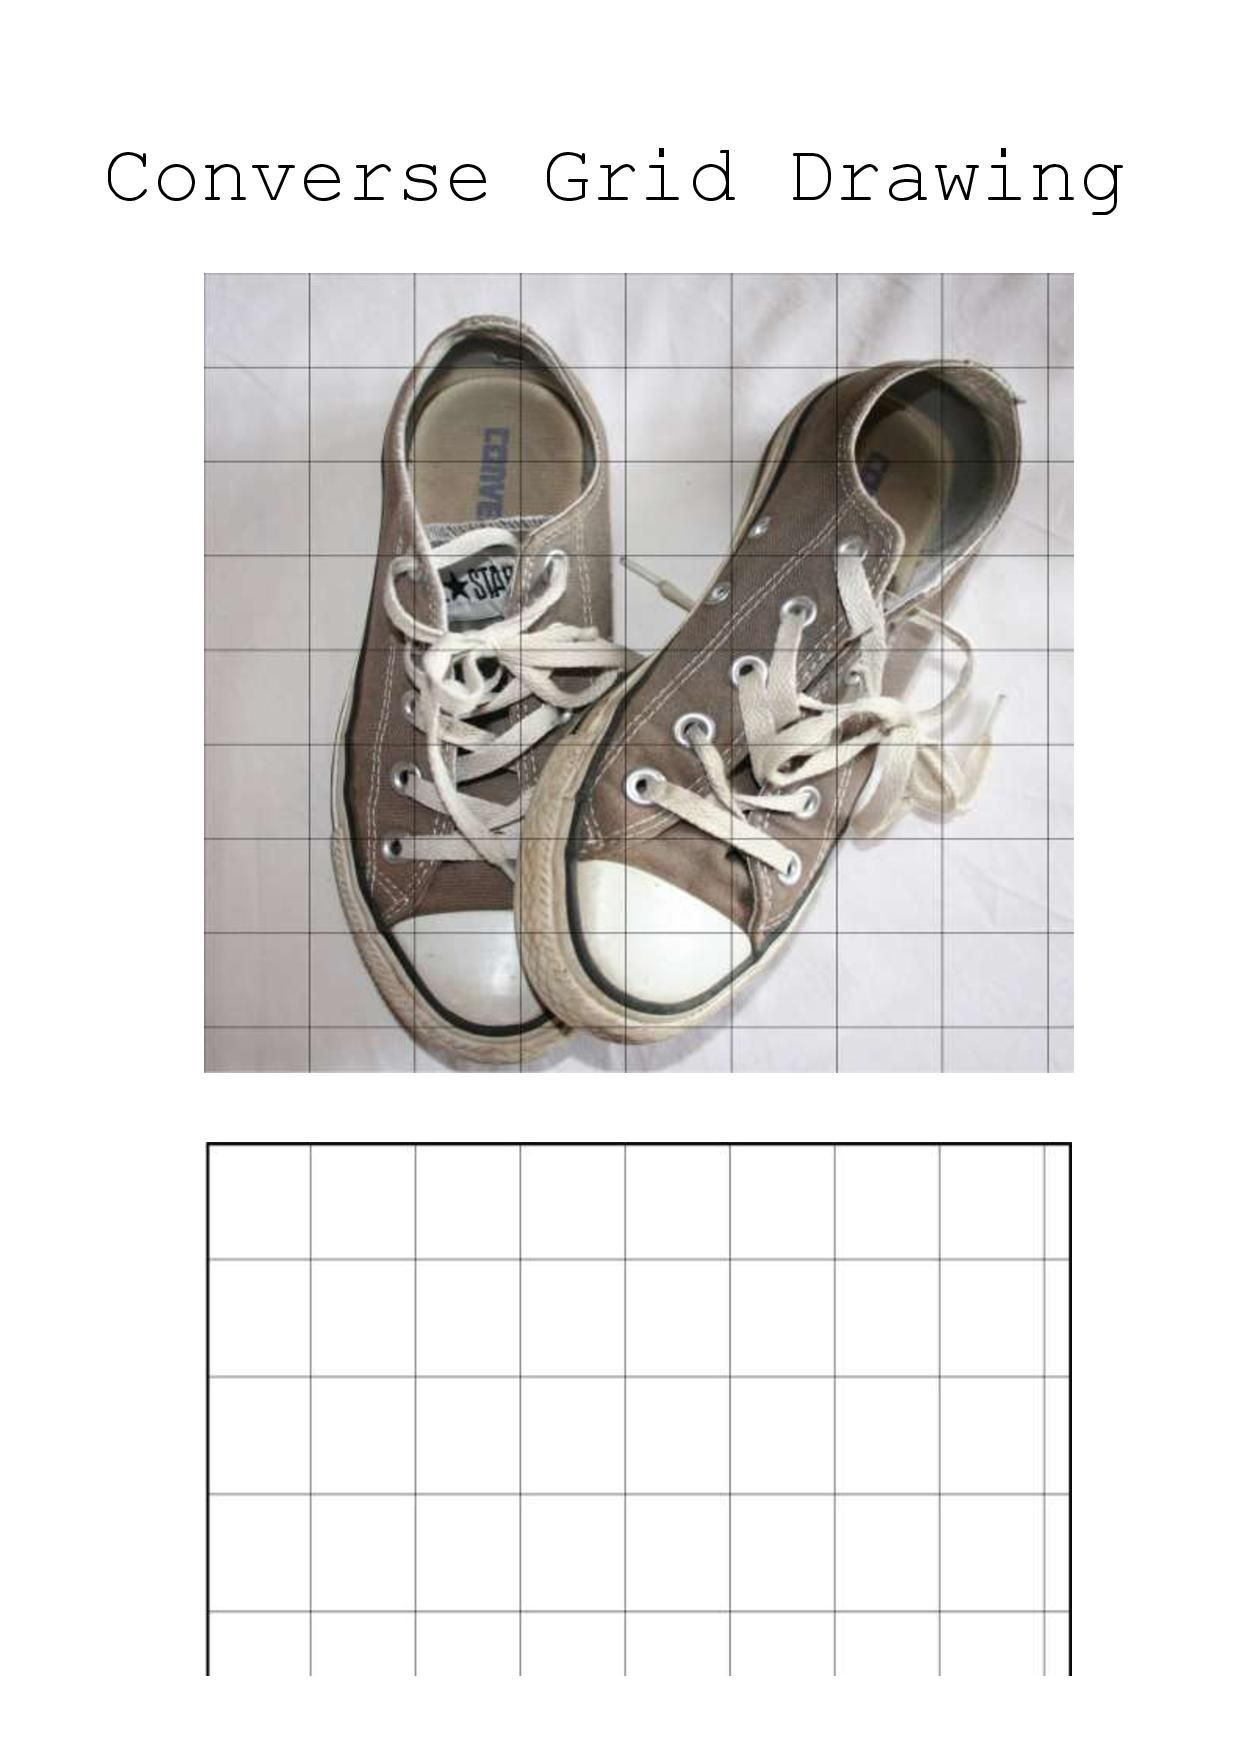 Grid Drawing Worksheets Middle School Grid Drawing for Art Teachers Teach Drawing Skills Ideal